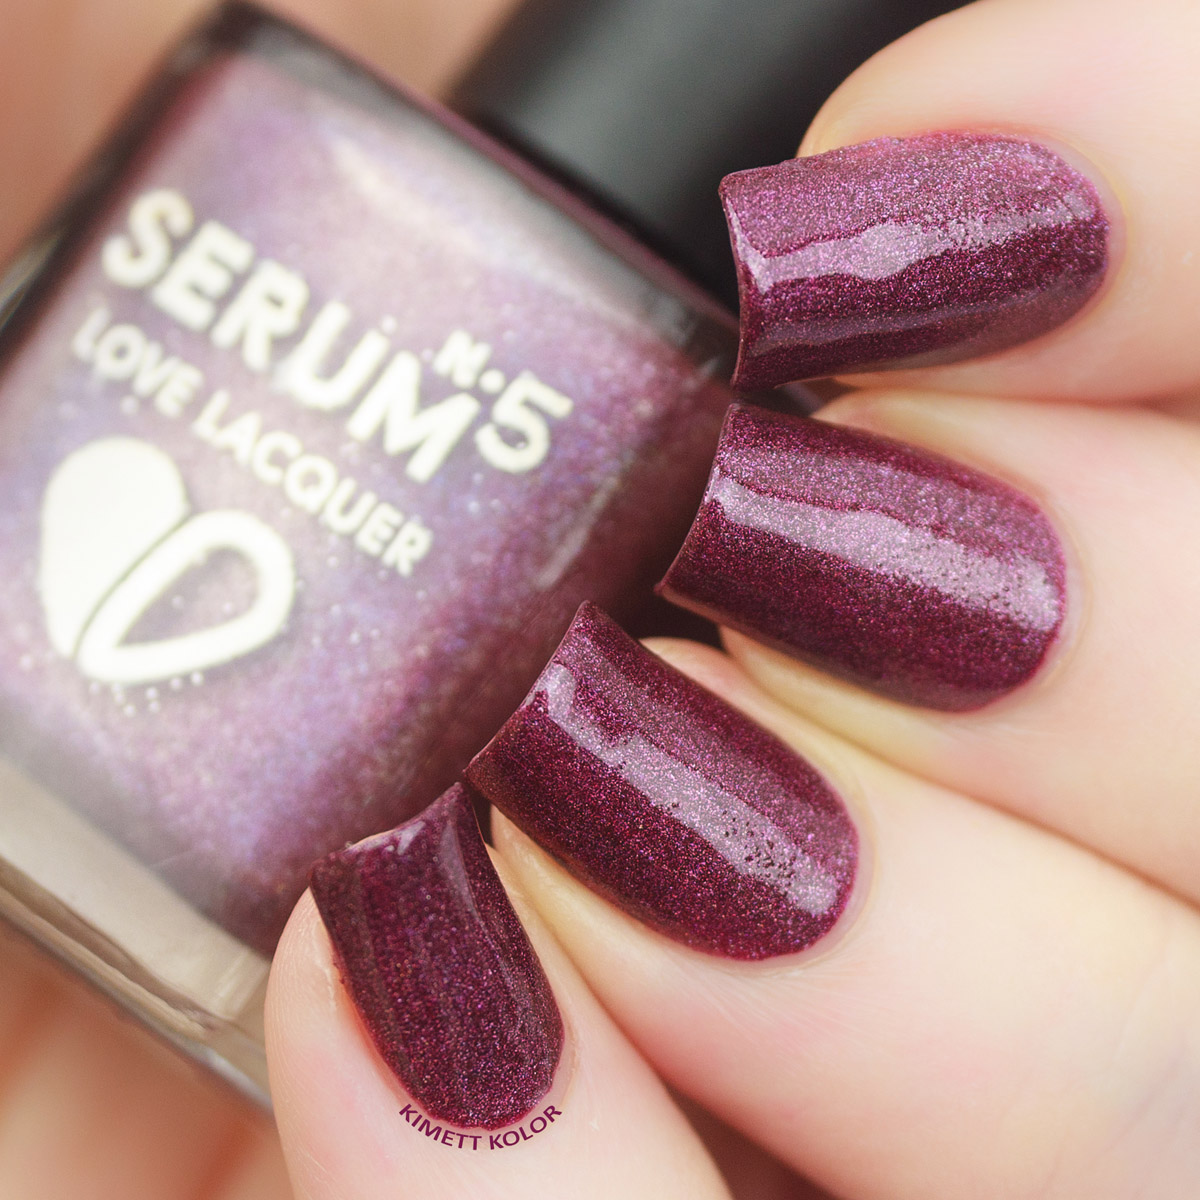 Kimett Kolor Plum Luck Nail Polish by SerumNo5